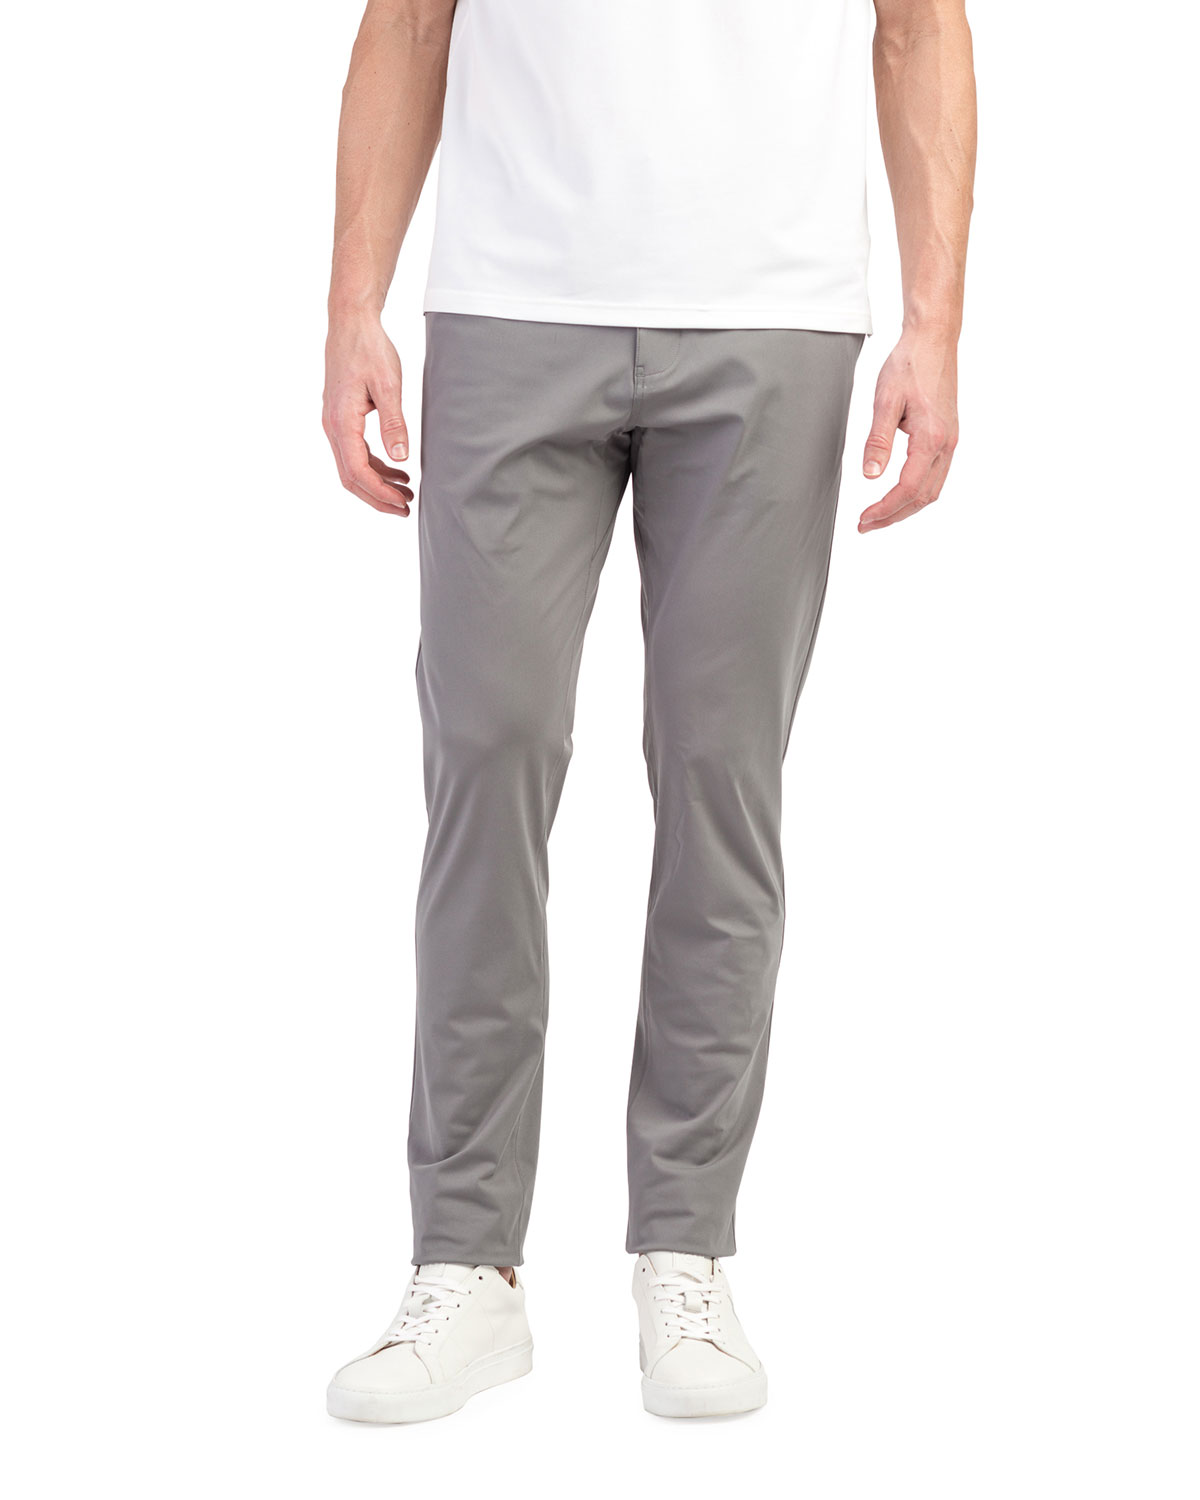 Rhone Men's Commuter Slim Pants